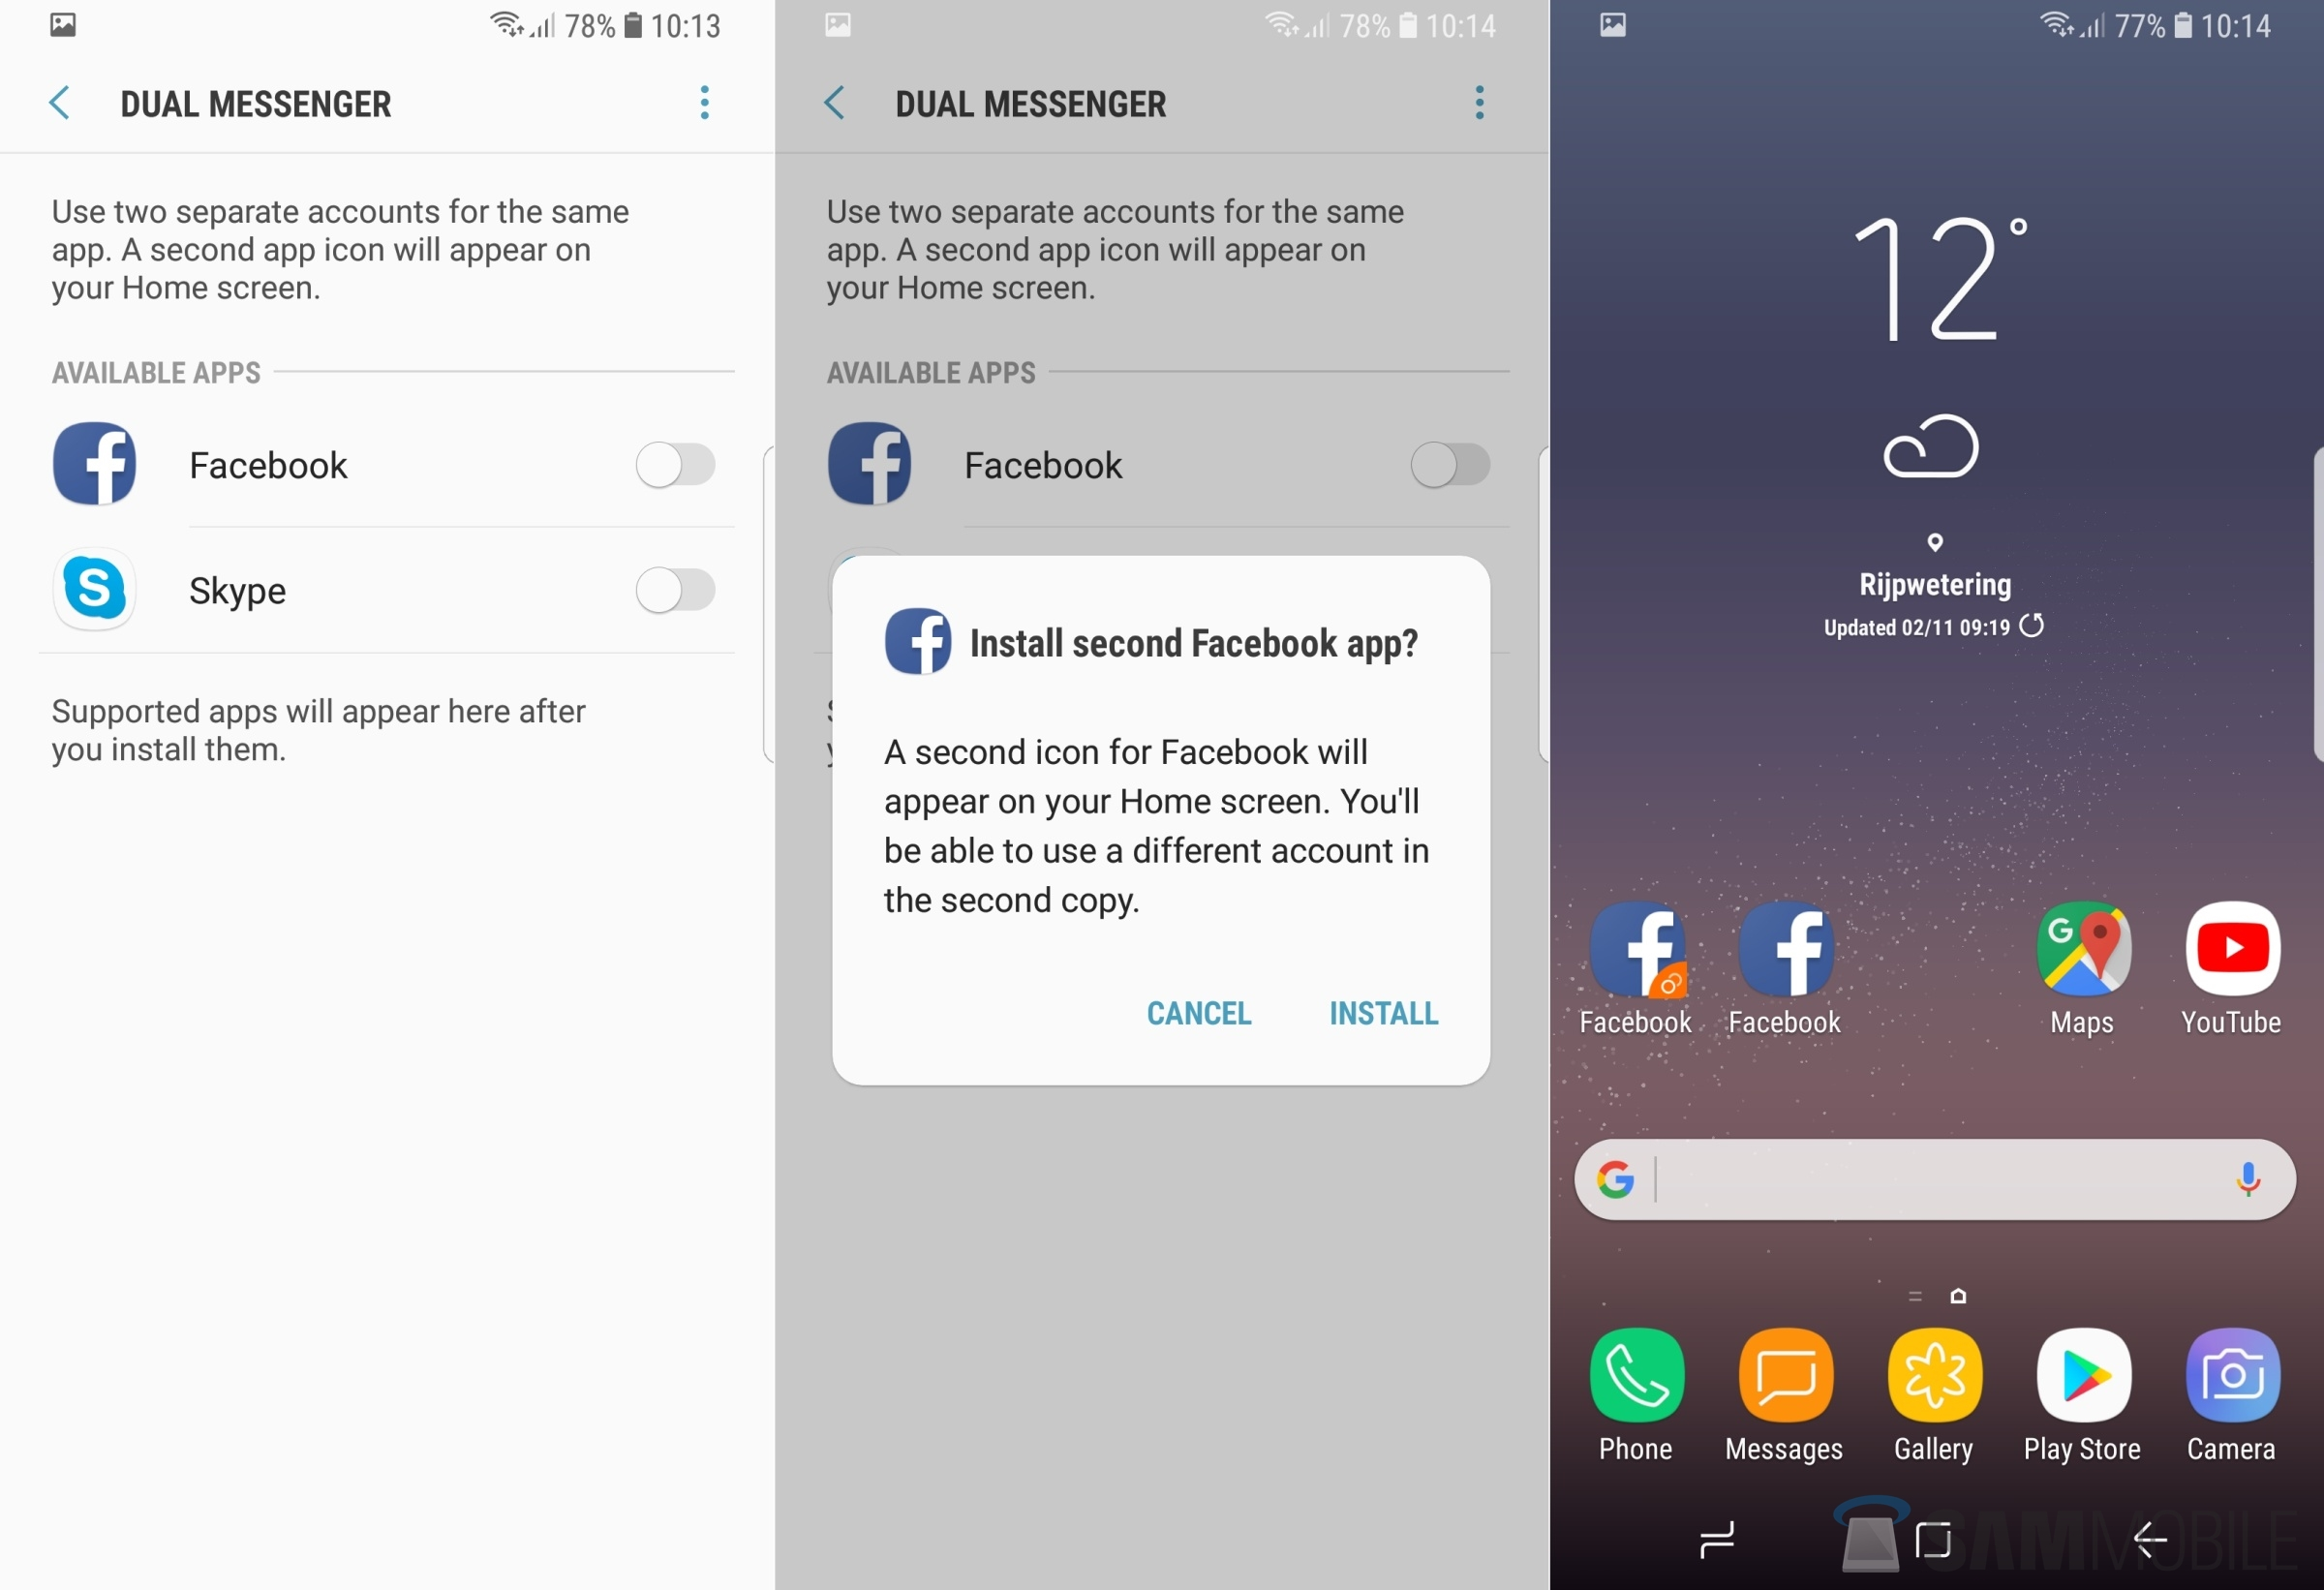 What's New With Android 8 0 Oreo Part 4: Dual Messenger is